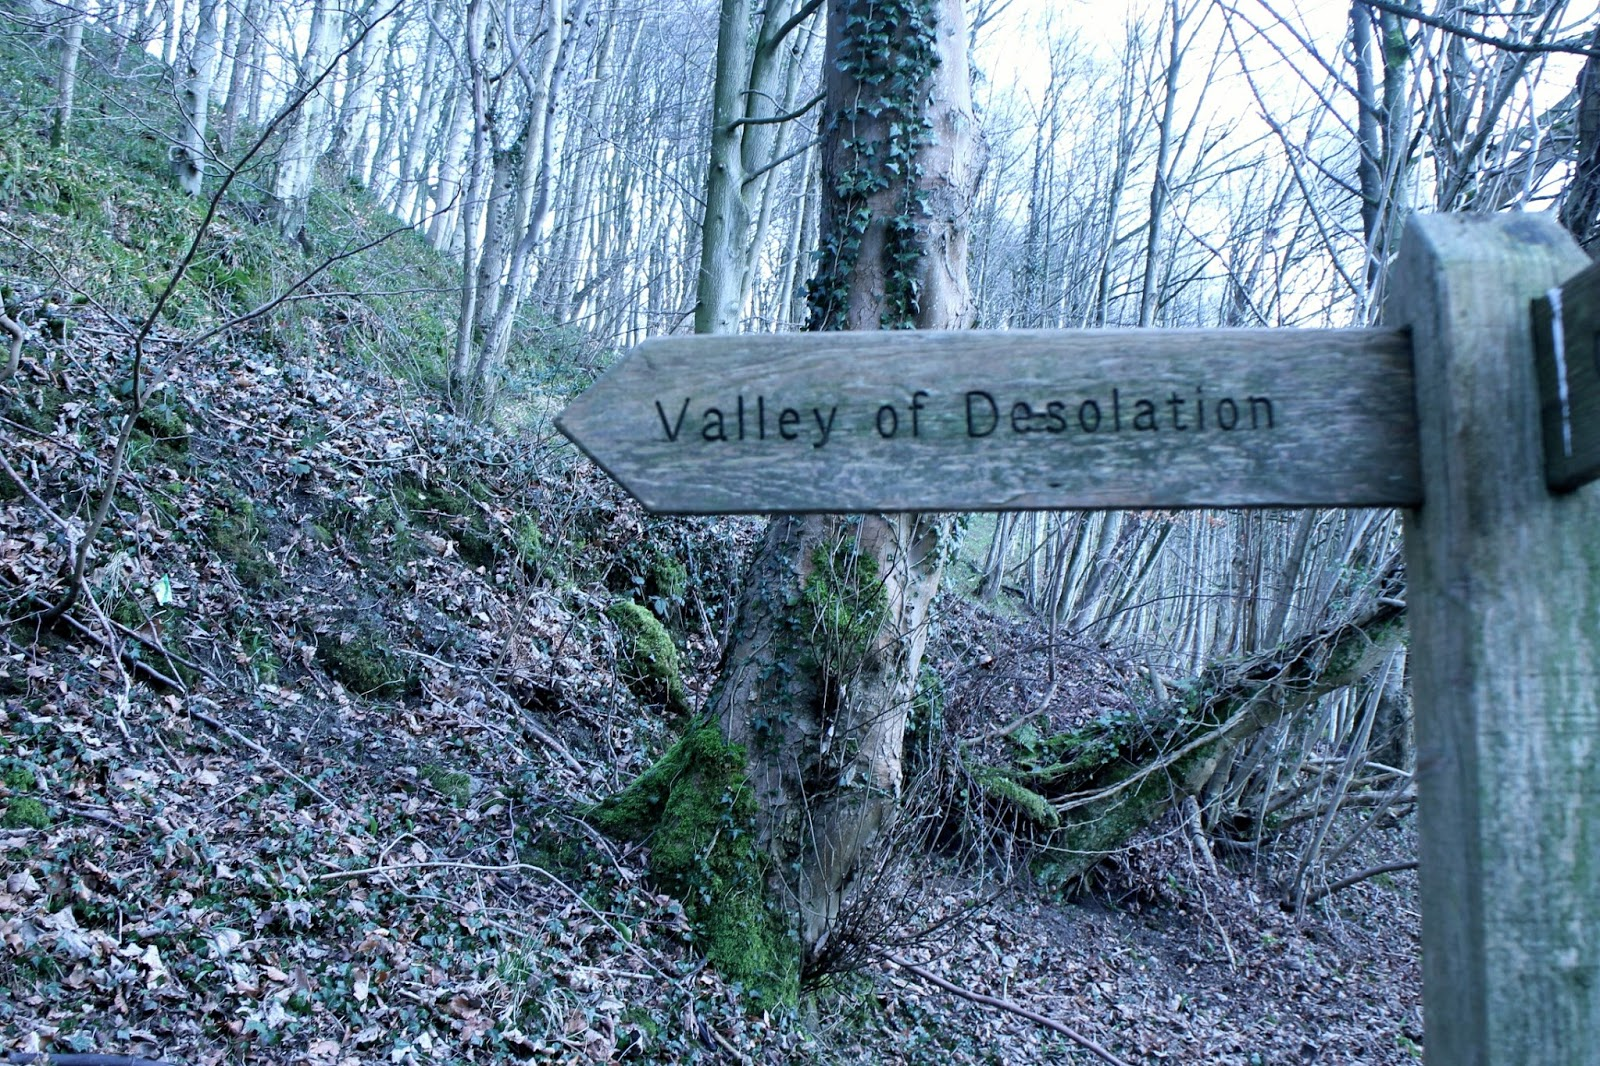 A sign pointing towards the Valley of Desolation